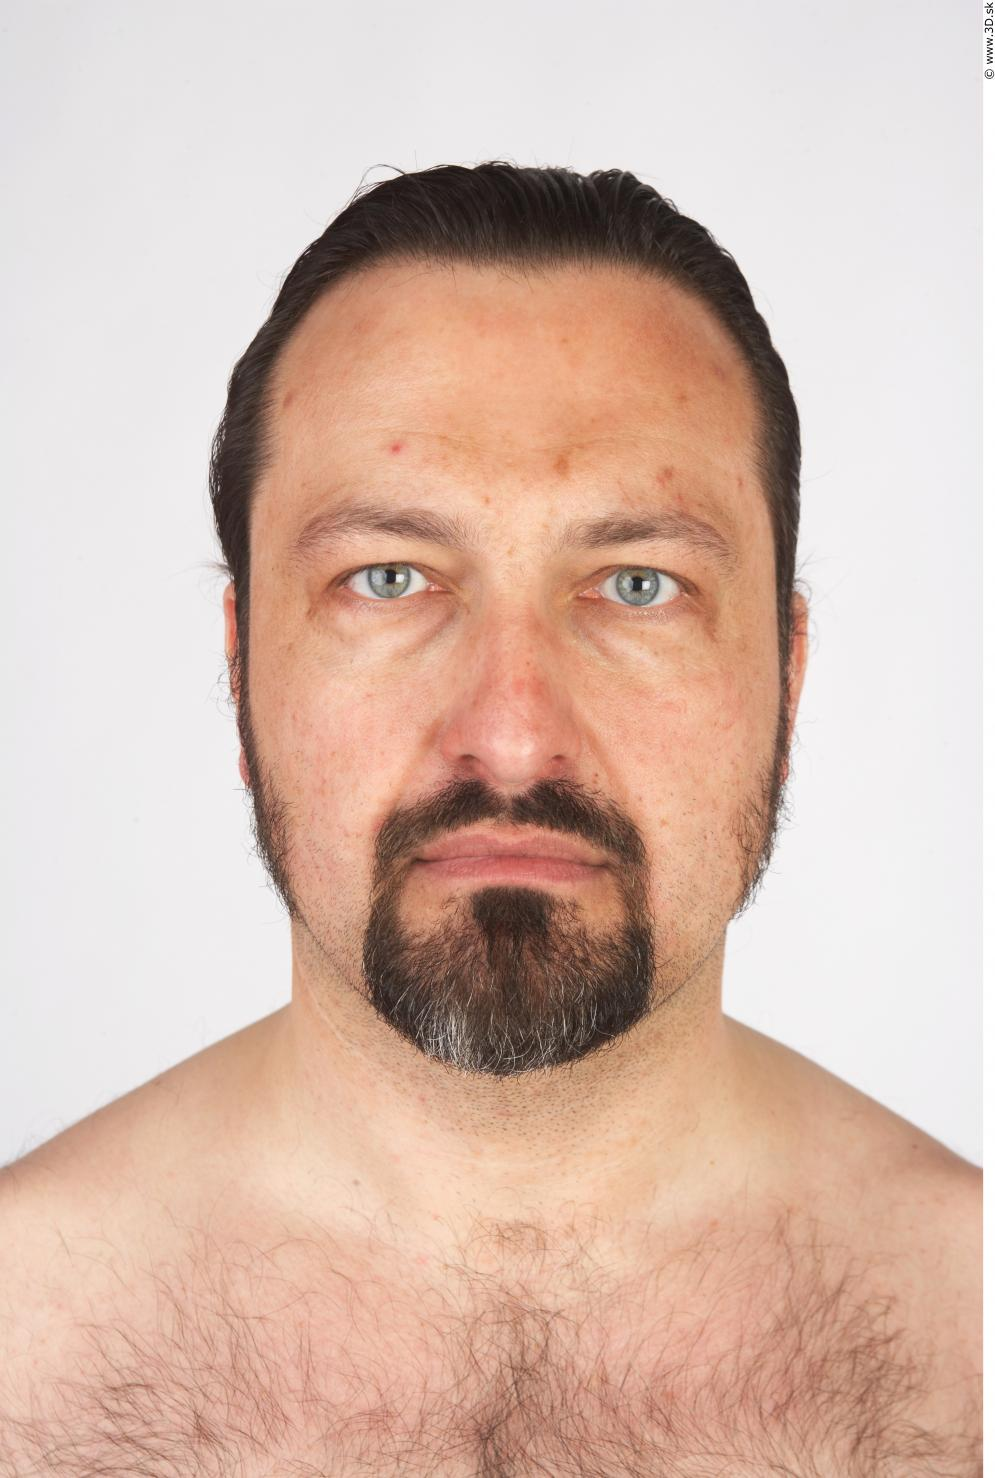 Image from Arnost - Male caucasian photo references from 3D.sk - 294597arnost_0259.jpg